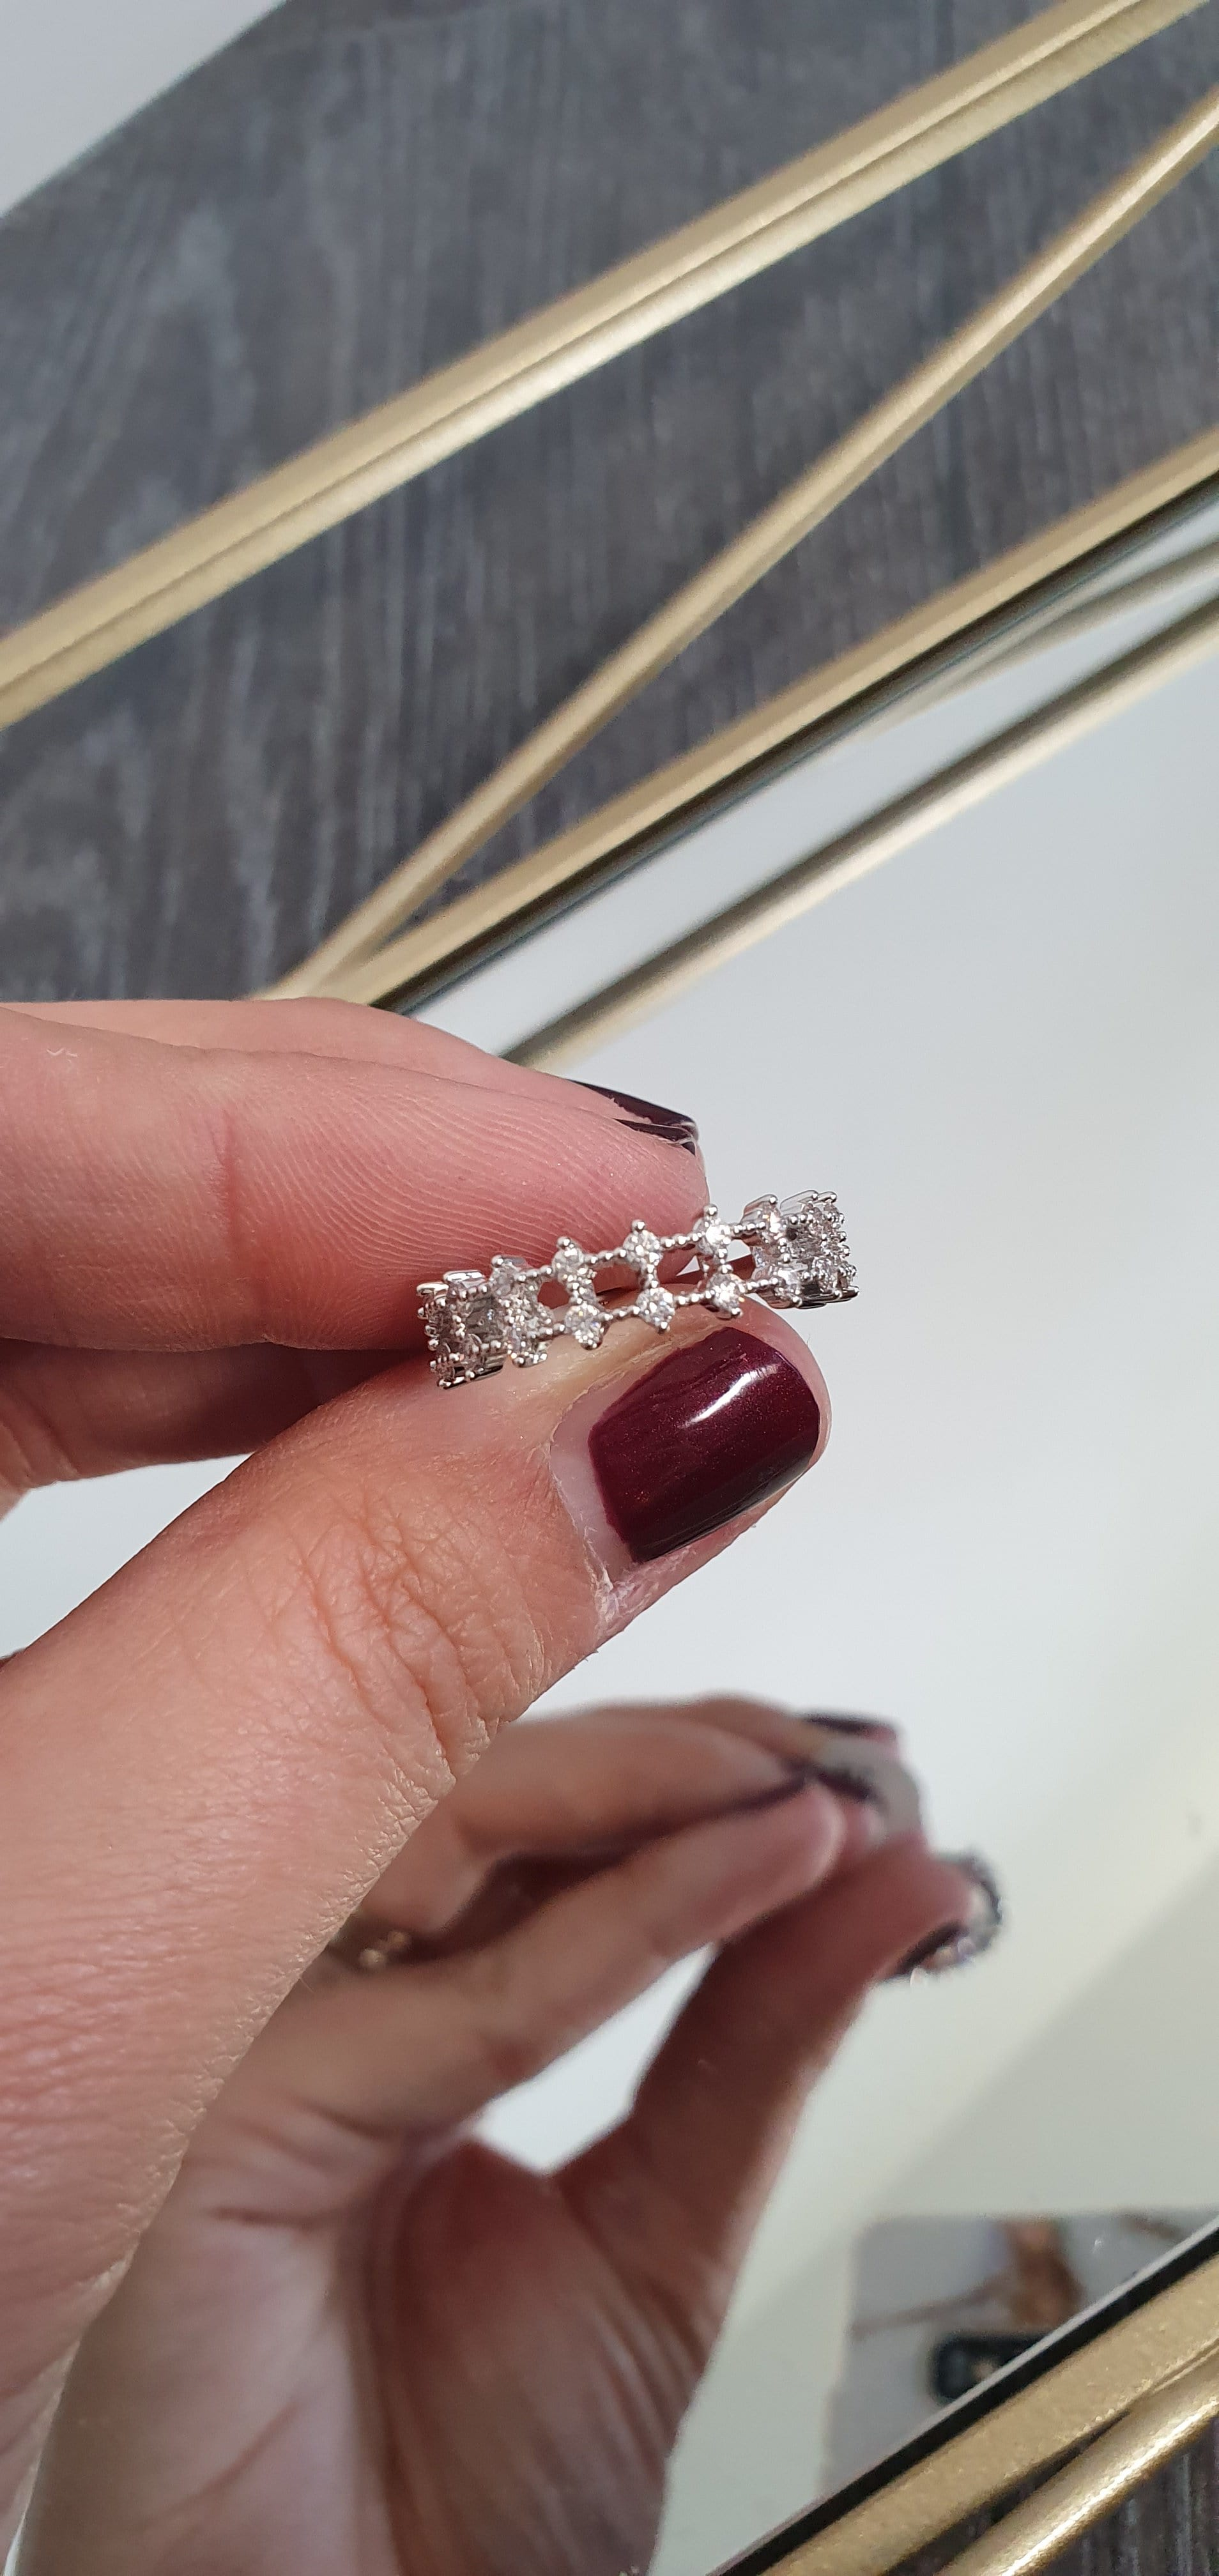 The Diamante track ring